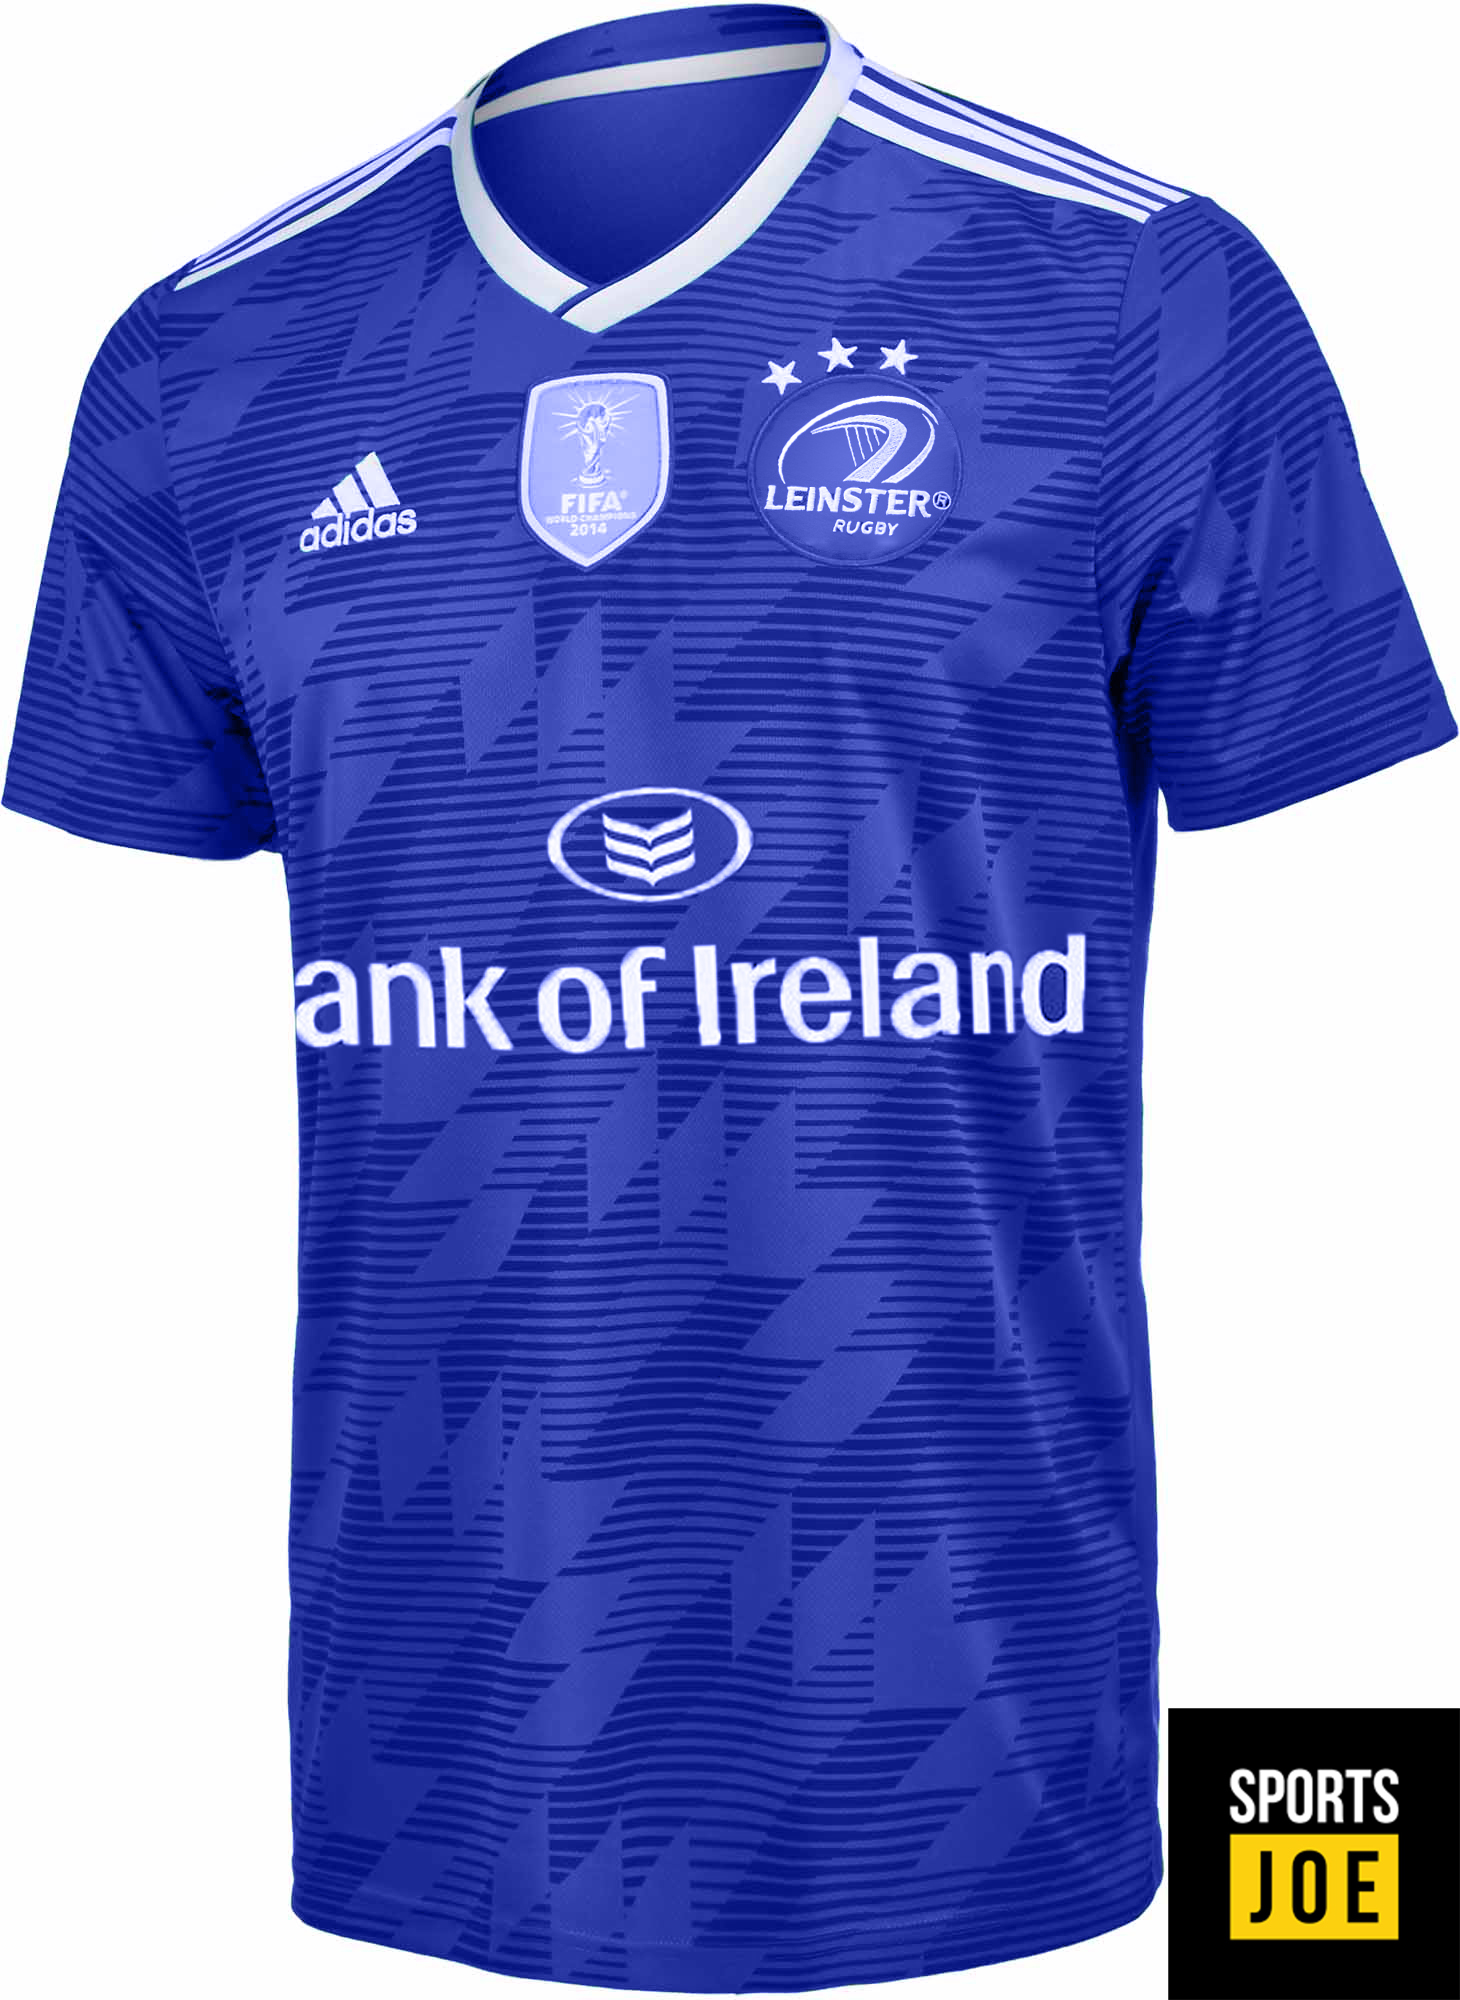 f478585b9 What Leinster's new Adidas jersey might look like | SportsJOE.ie